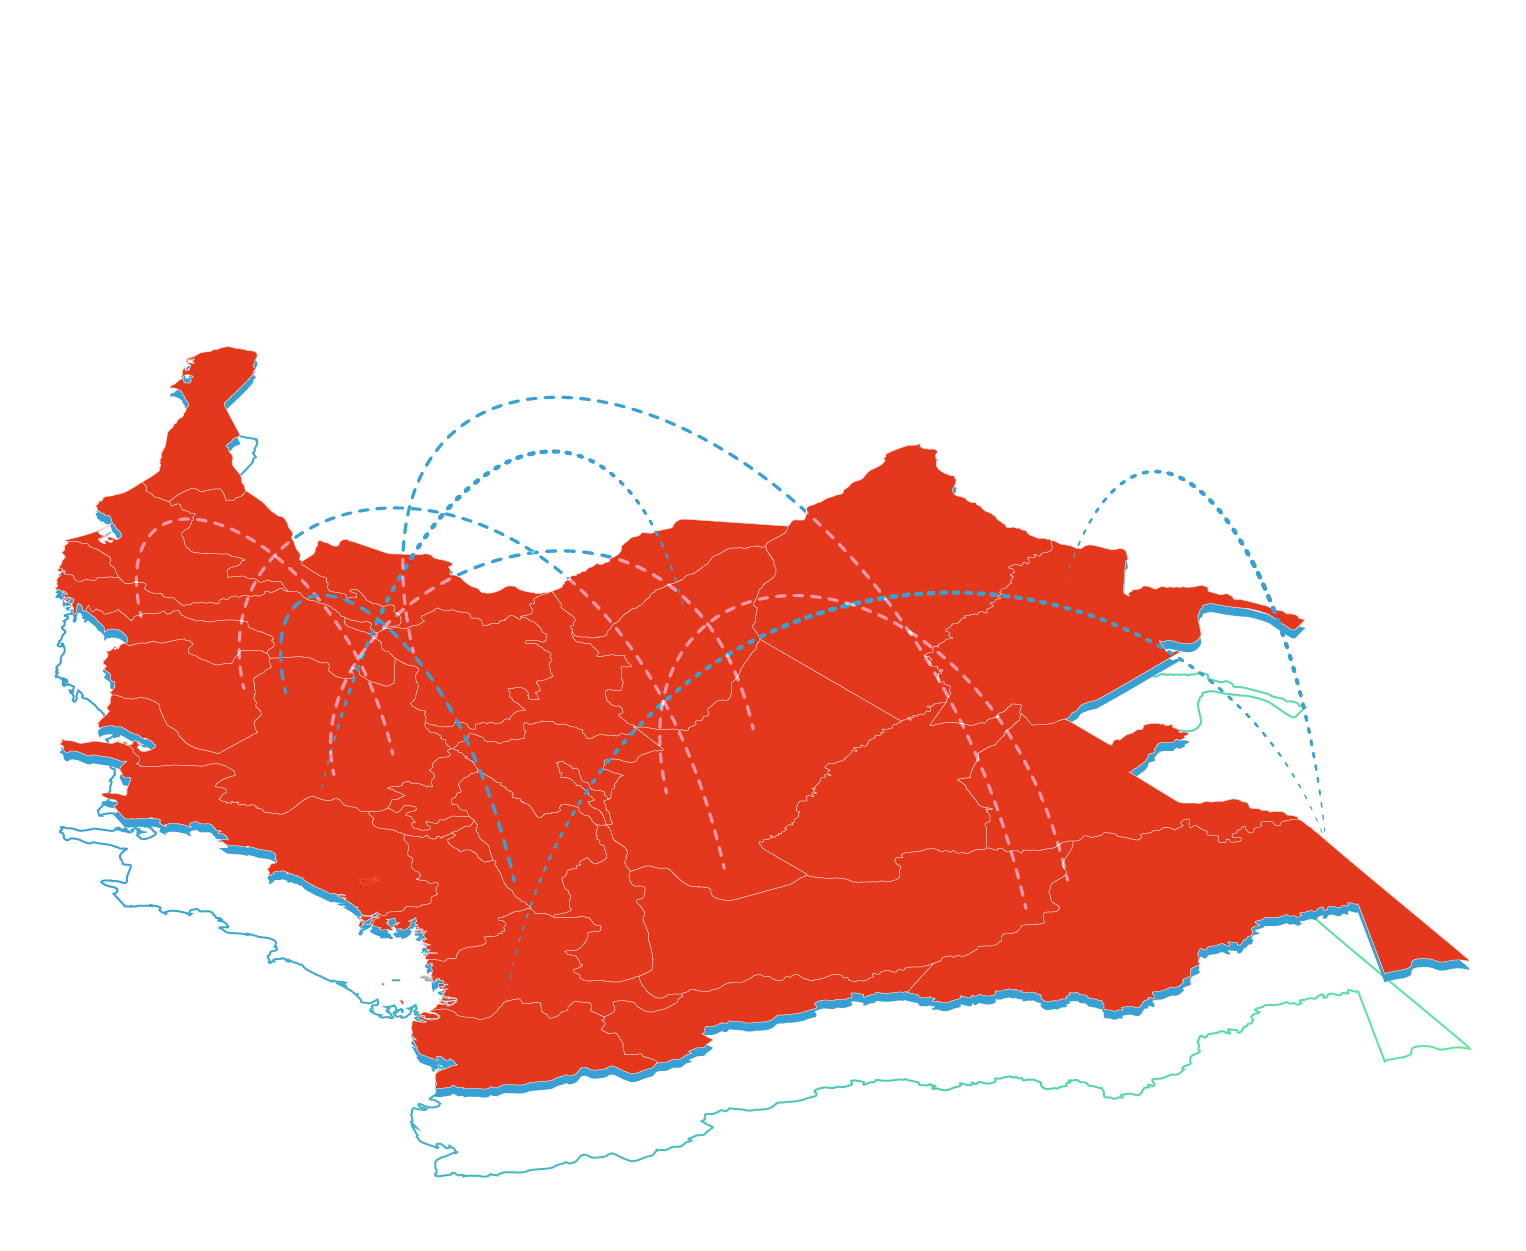 Colombia iso map